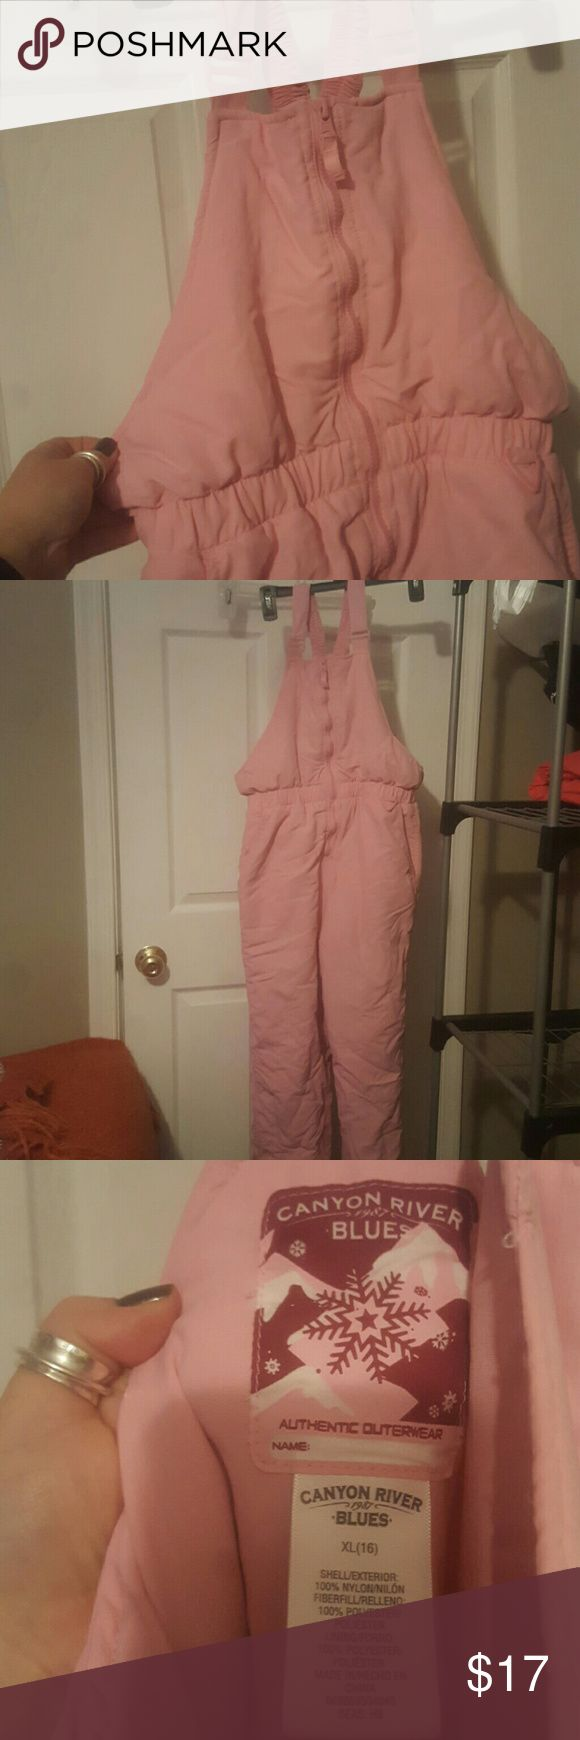 Canyon River Blues extra large girls snow pants Cute pink bib style snow pants size 16 extra large.  Very good condition.  Two pockets in the front, zipper closure at the chest. Gaiters at the bottom inside leg. Straps have Velcro adjustment at the top. Canyon River Blues Other